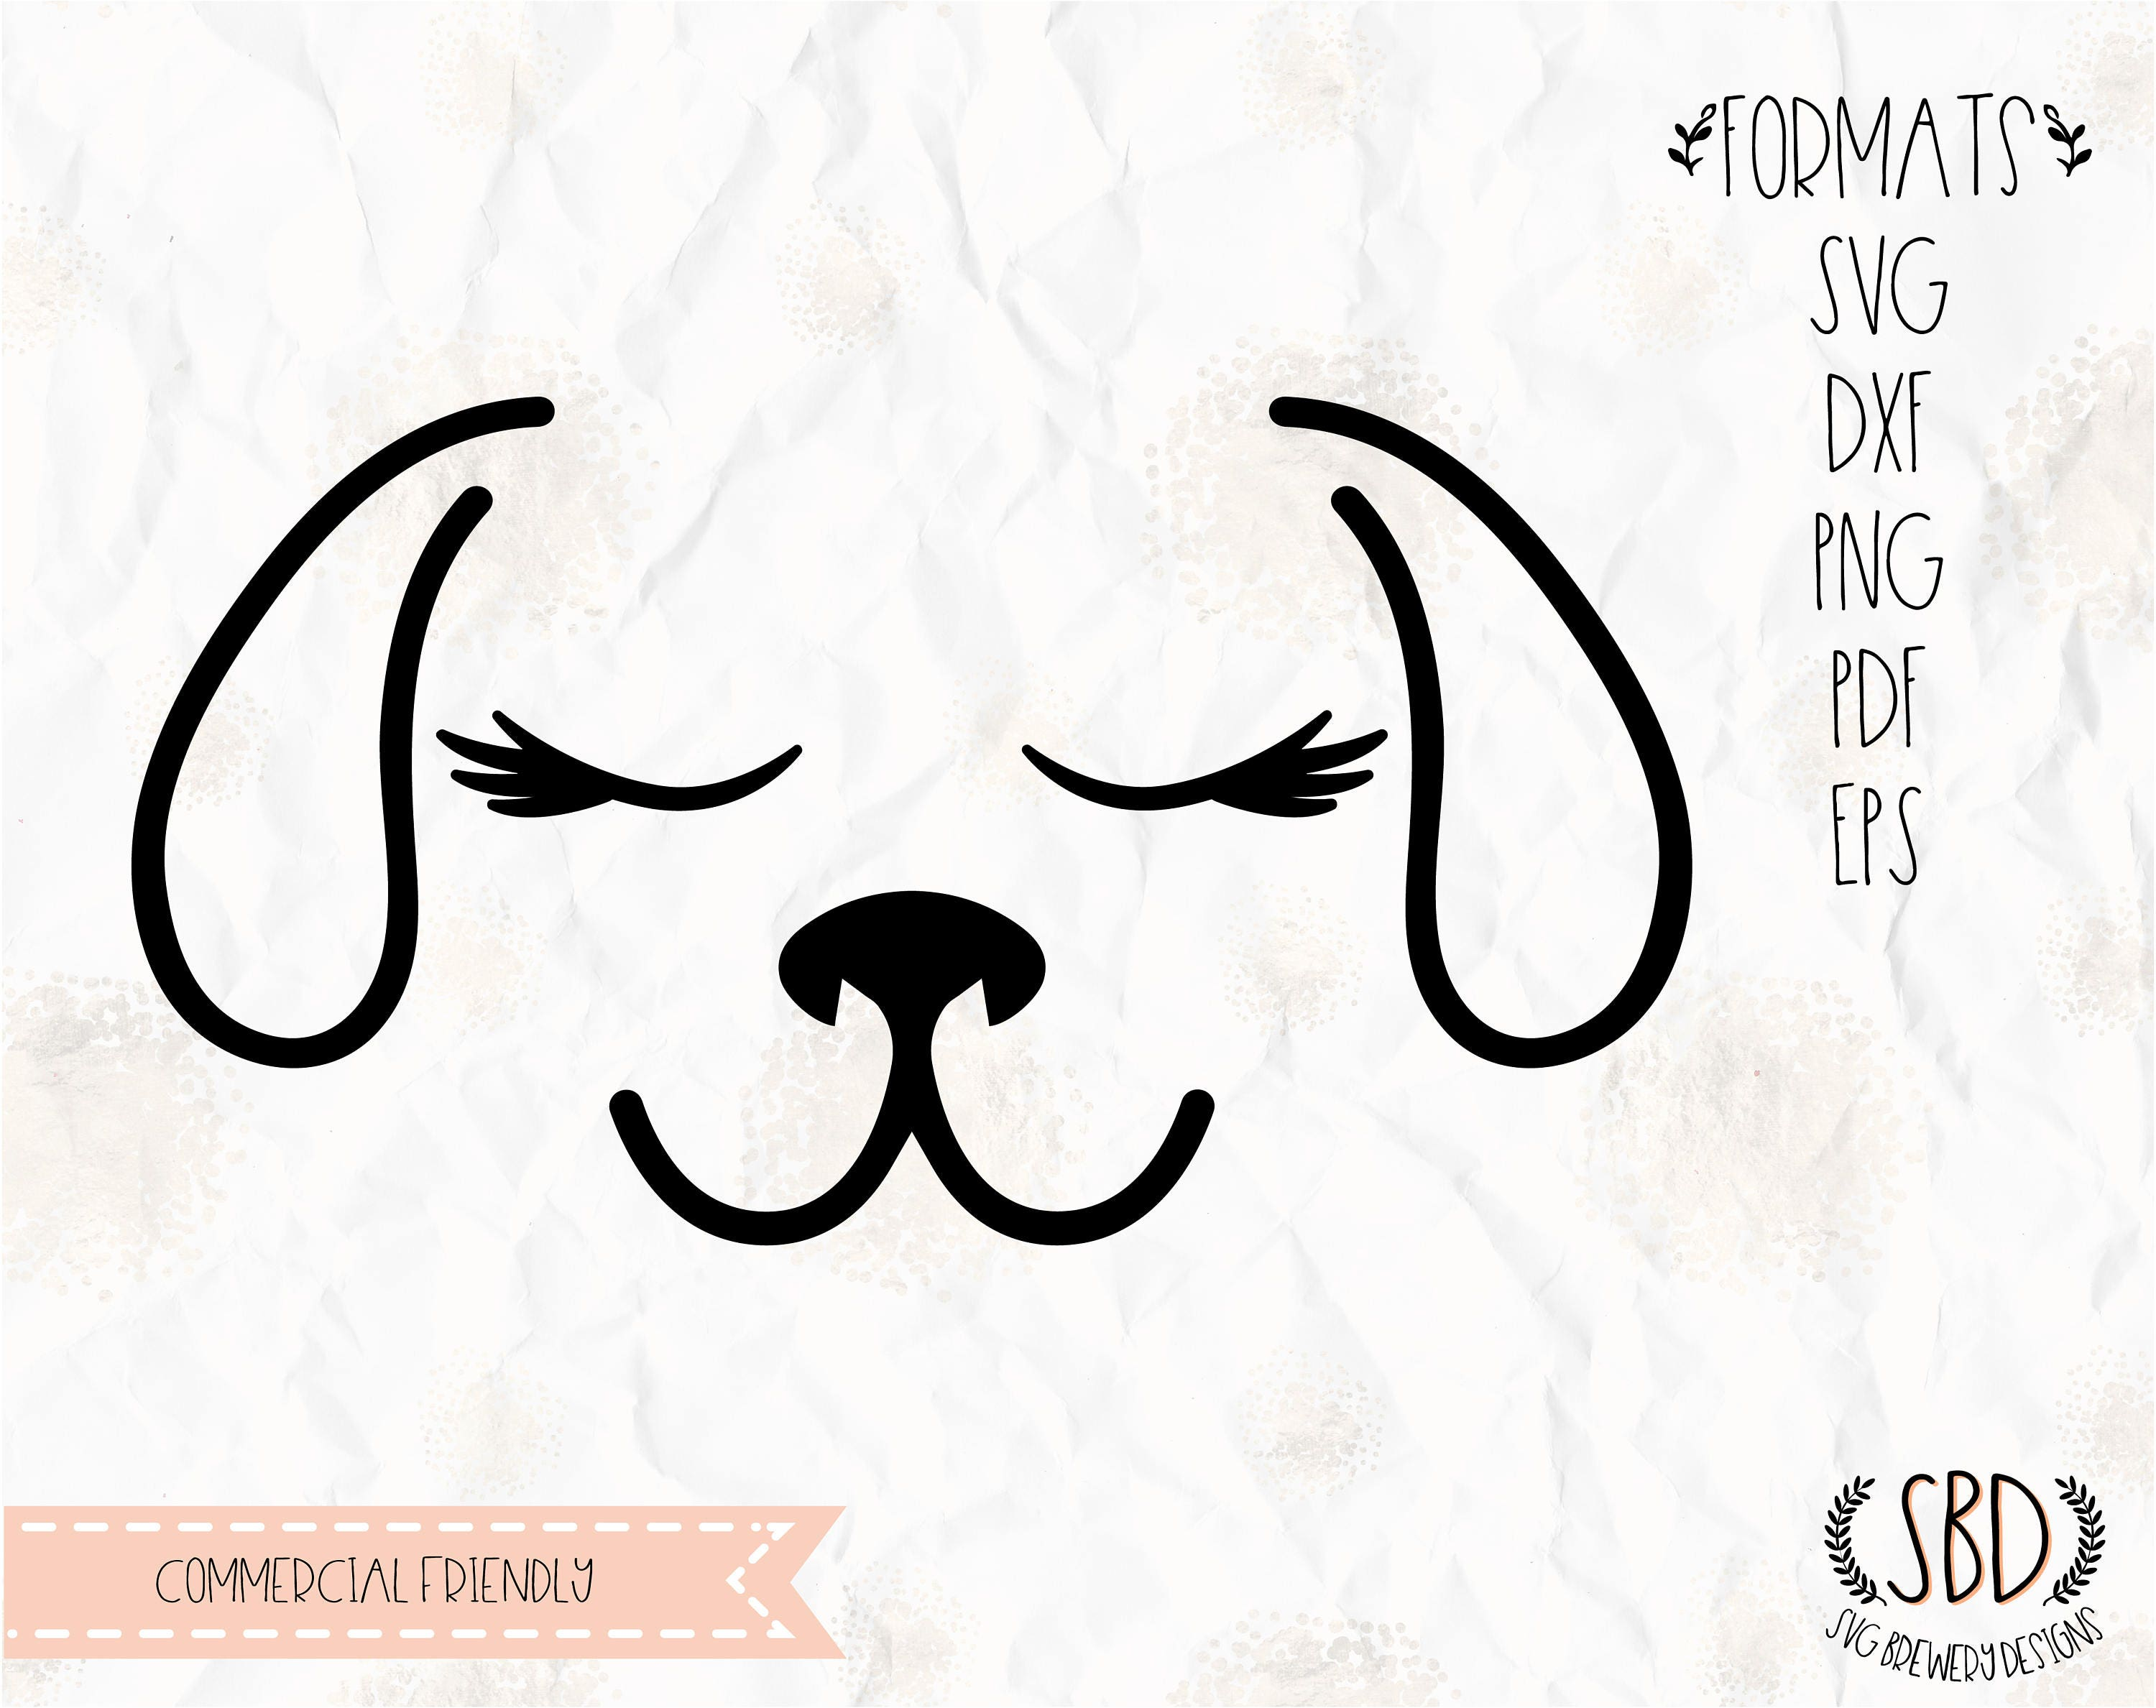 Dog face with lashes, eyelashes SVG, PNG, EPS, Dxf, Pdf cricut, silhouette  studio,cut file, vinyl decal, t shirt design, Stencil template